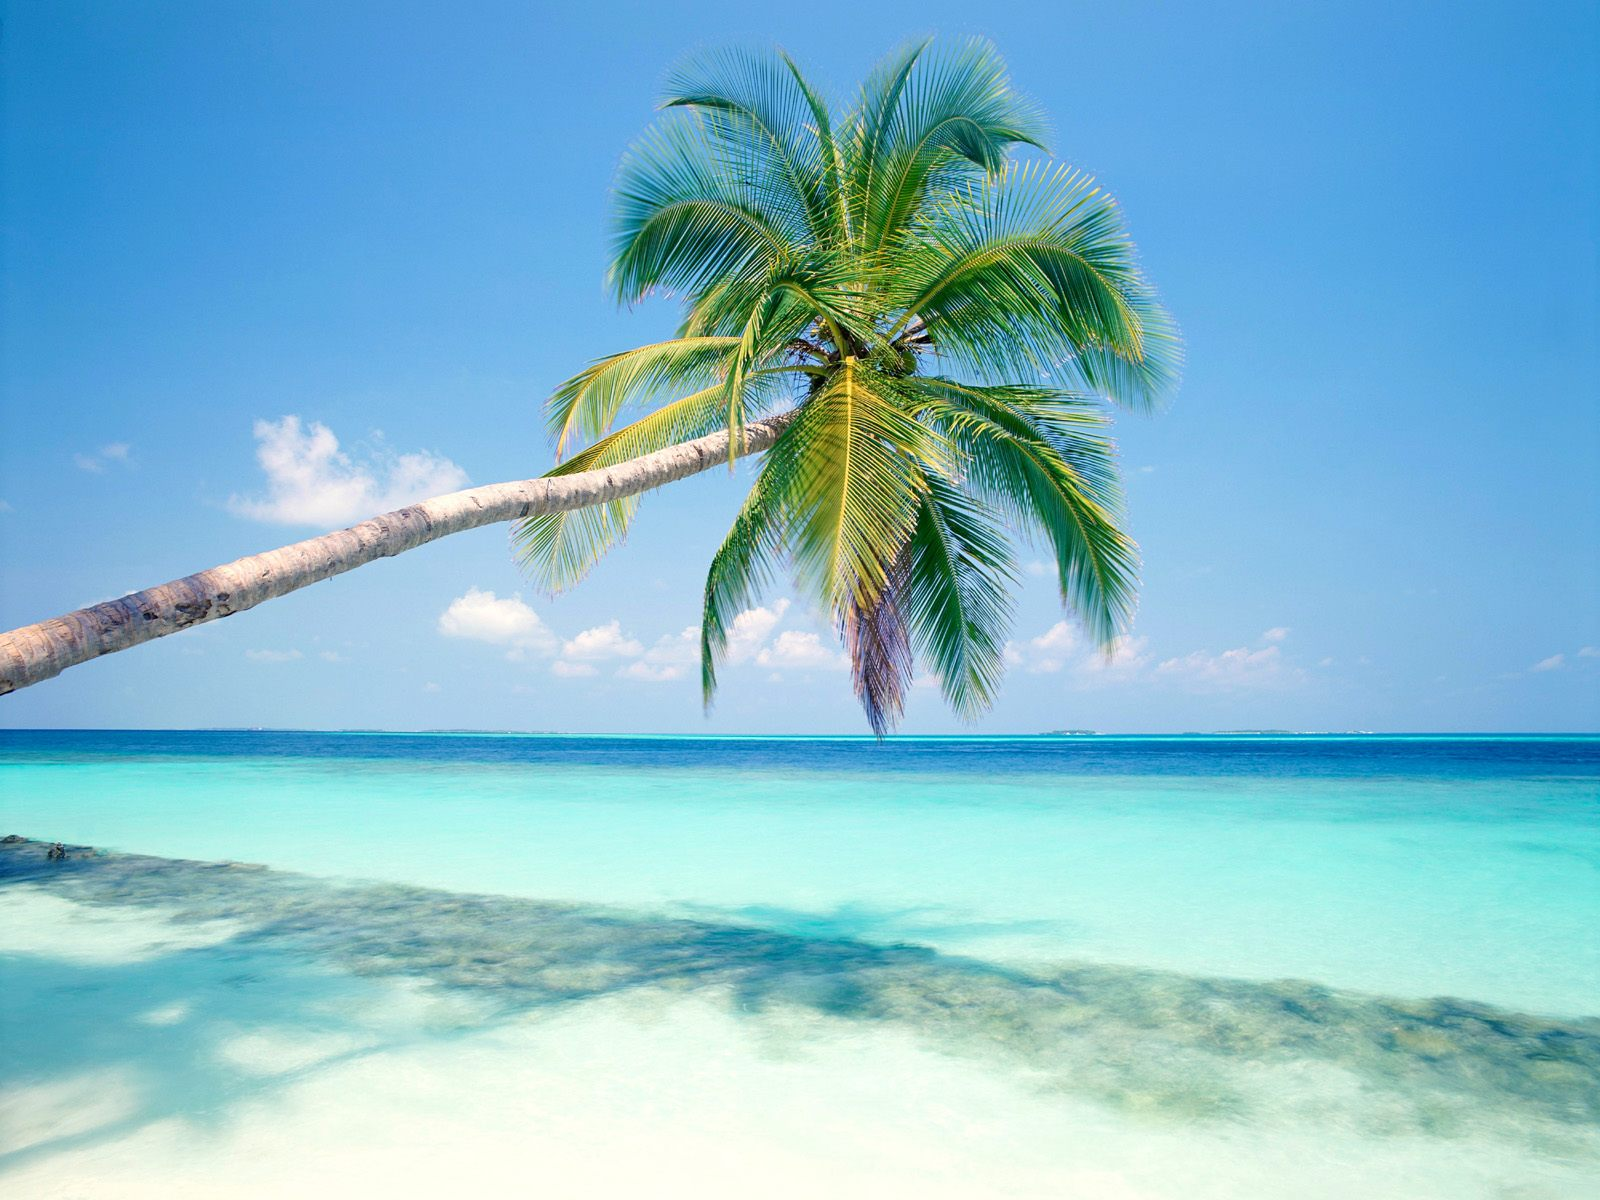 packing for tropical island vacation obtain a tropical island 1600x1200